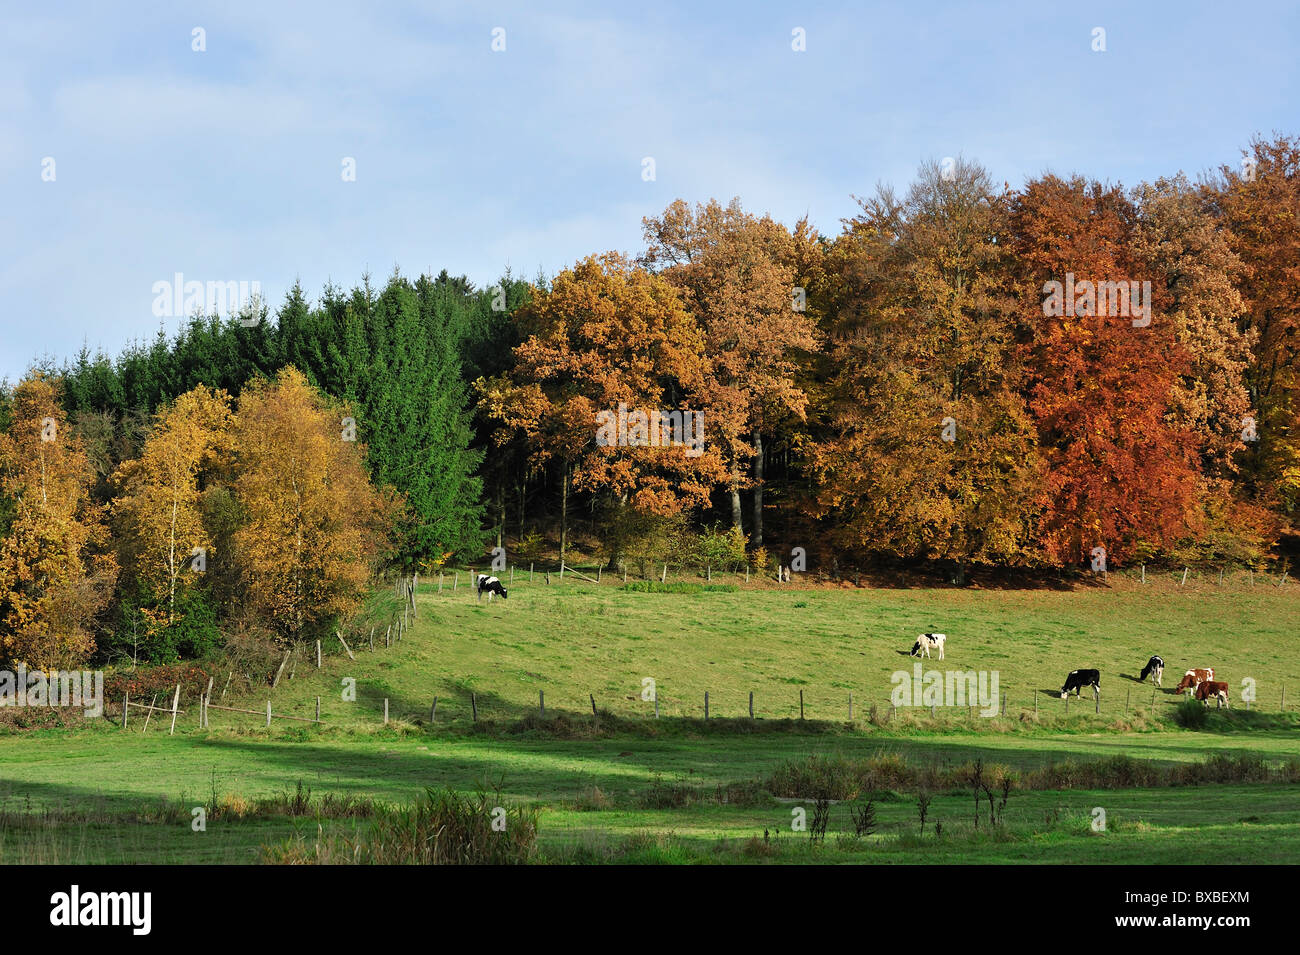 Farmland with cows in field and forest in autumn colours in the Ardennes, Belgium Stock Photo